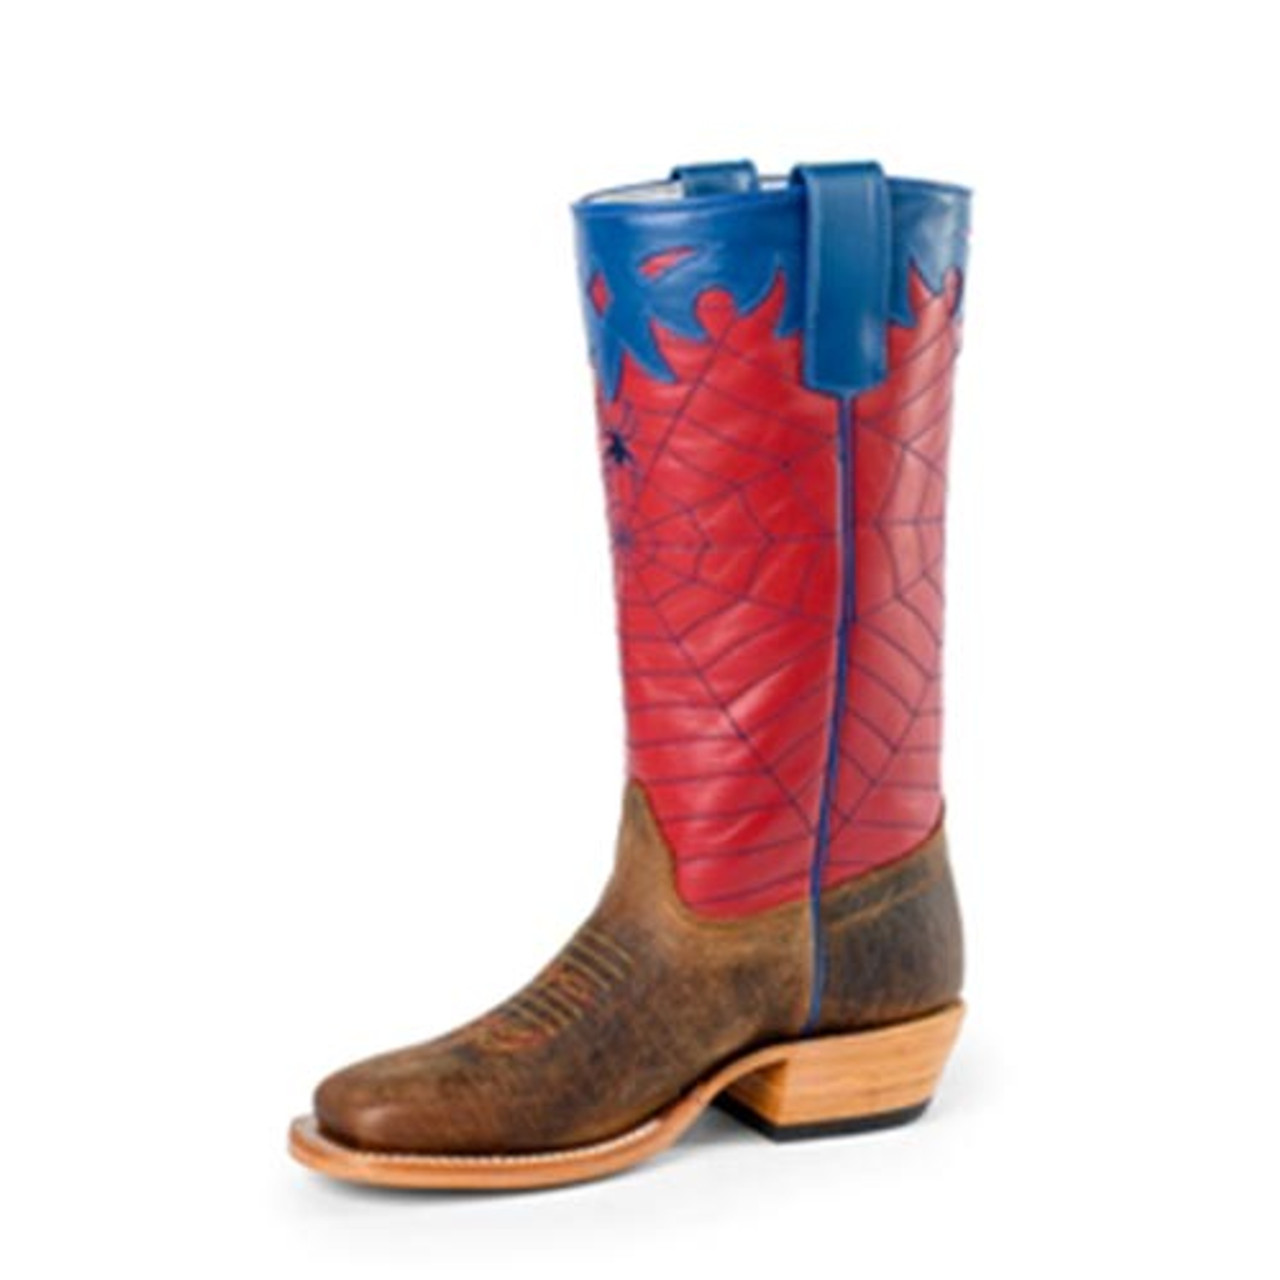 5a2b9079363 Anderson Bean - Olathe Kid's - Red & Blue Spider Web Cowboy Boots